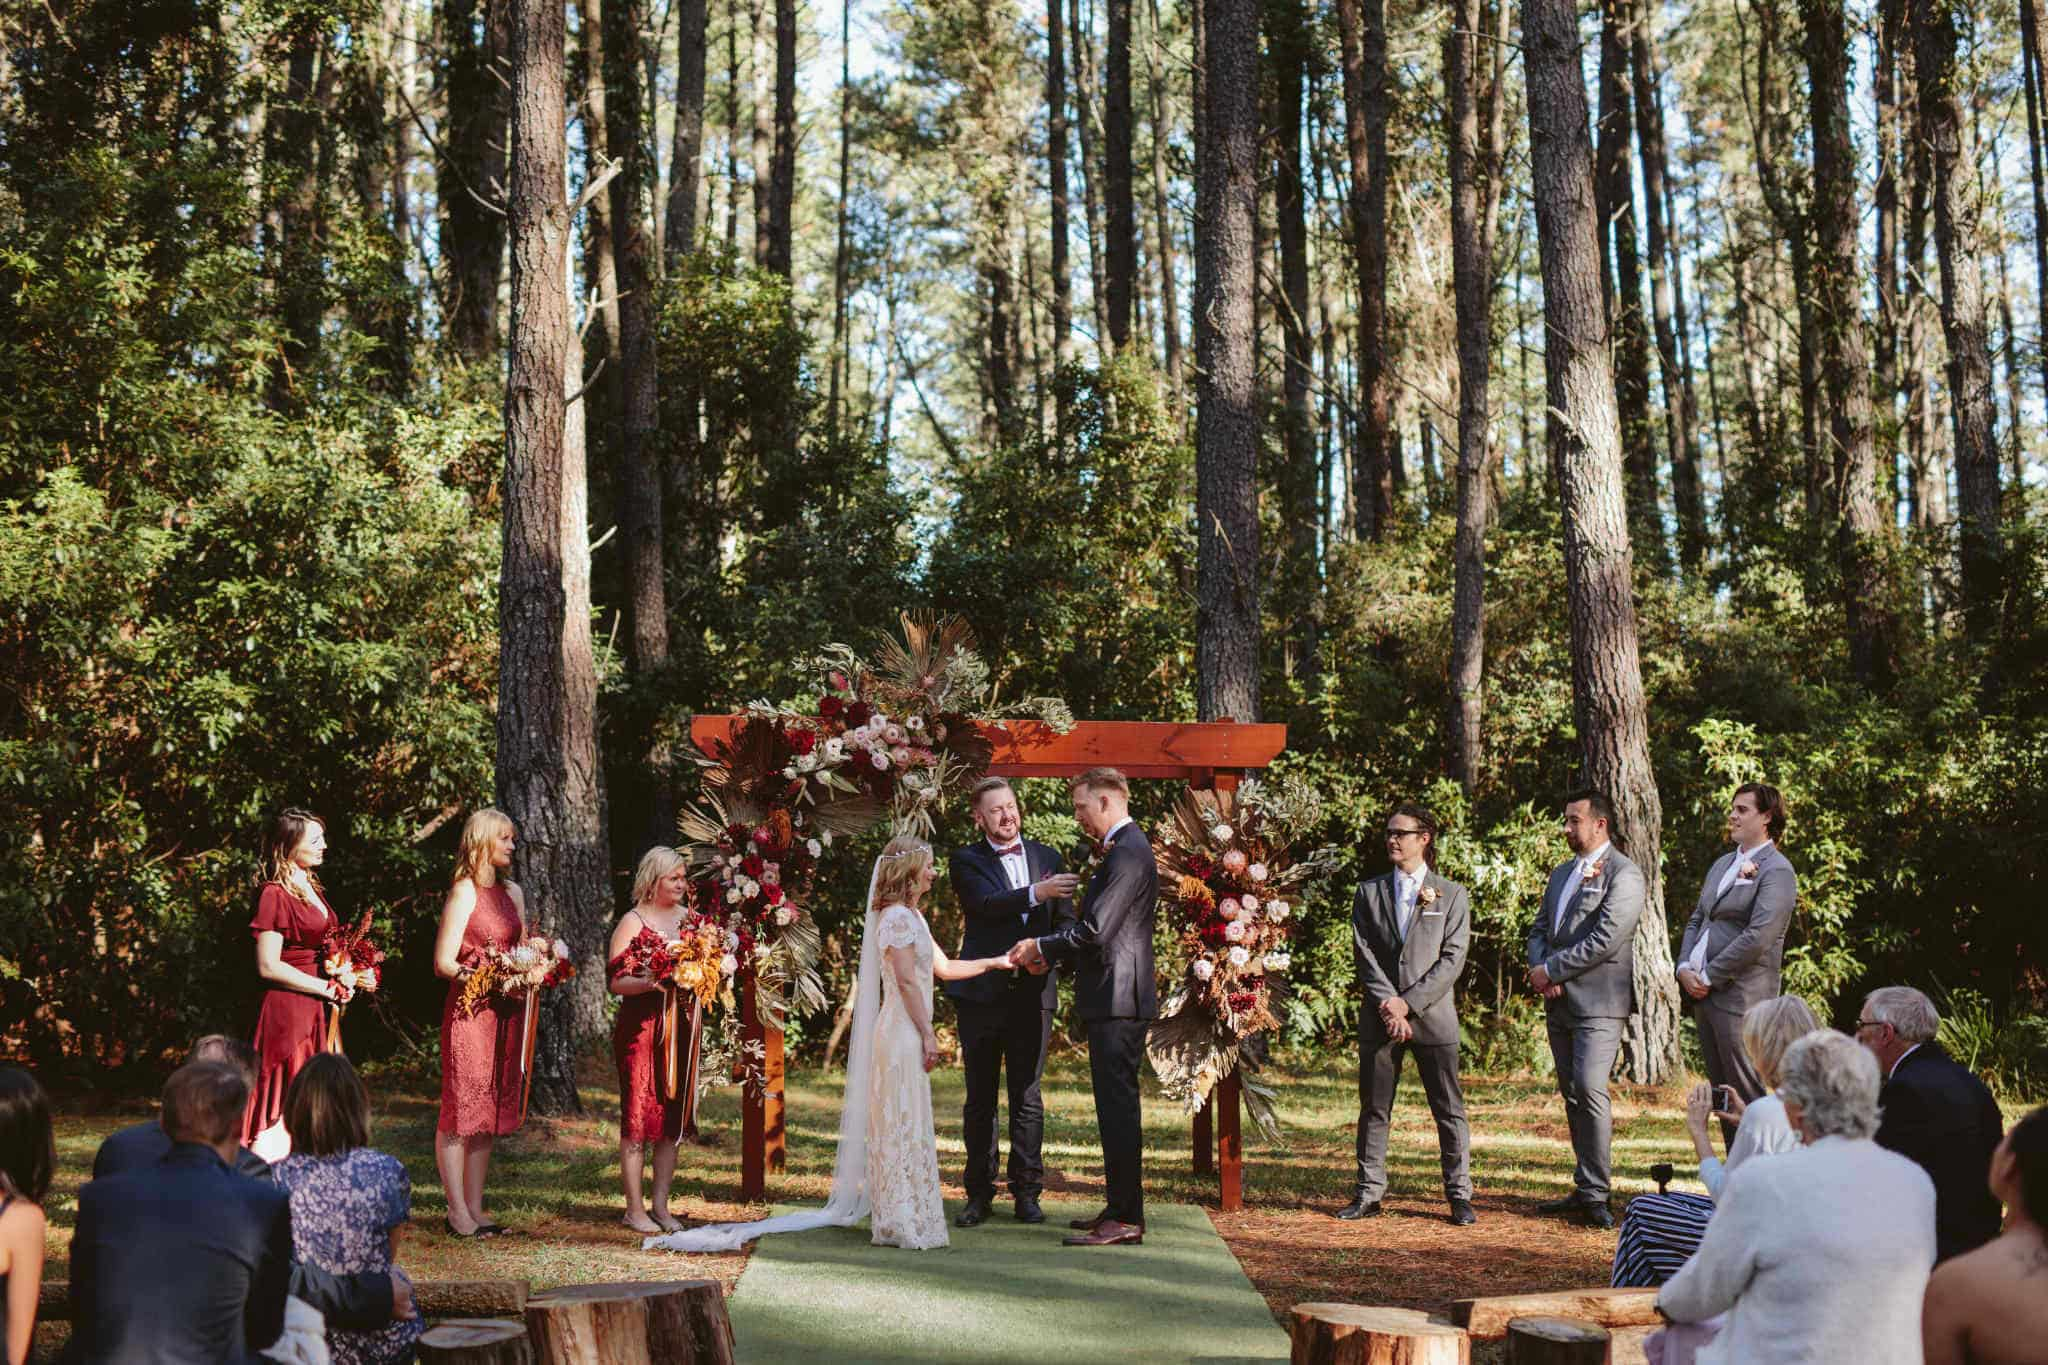 Bilpin Resort Wedding - Stephen Lee Sydney Marriage Celebrant